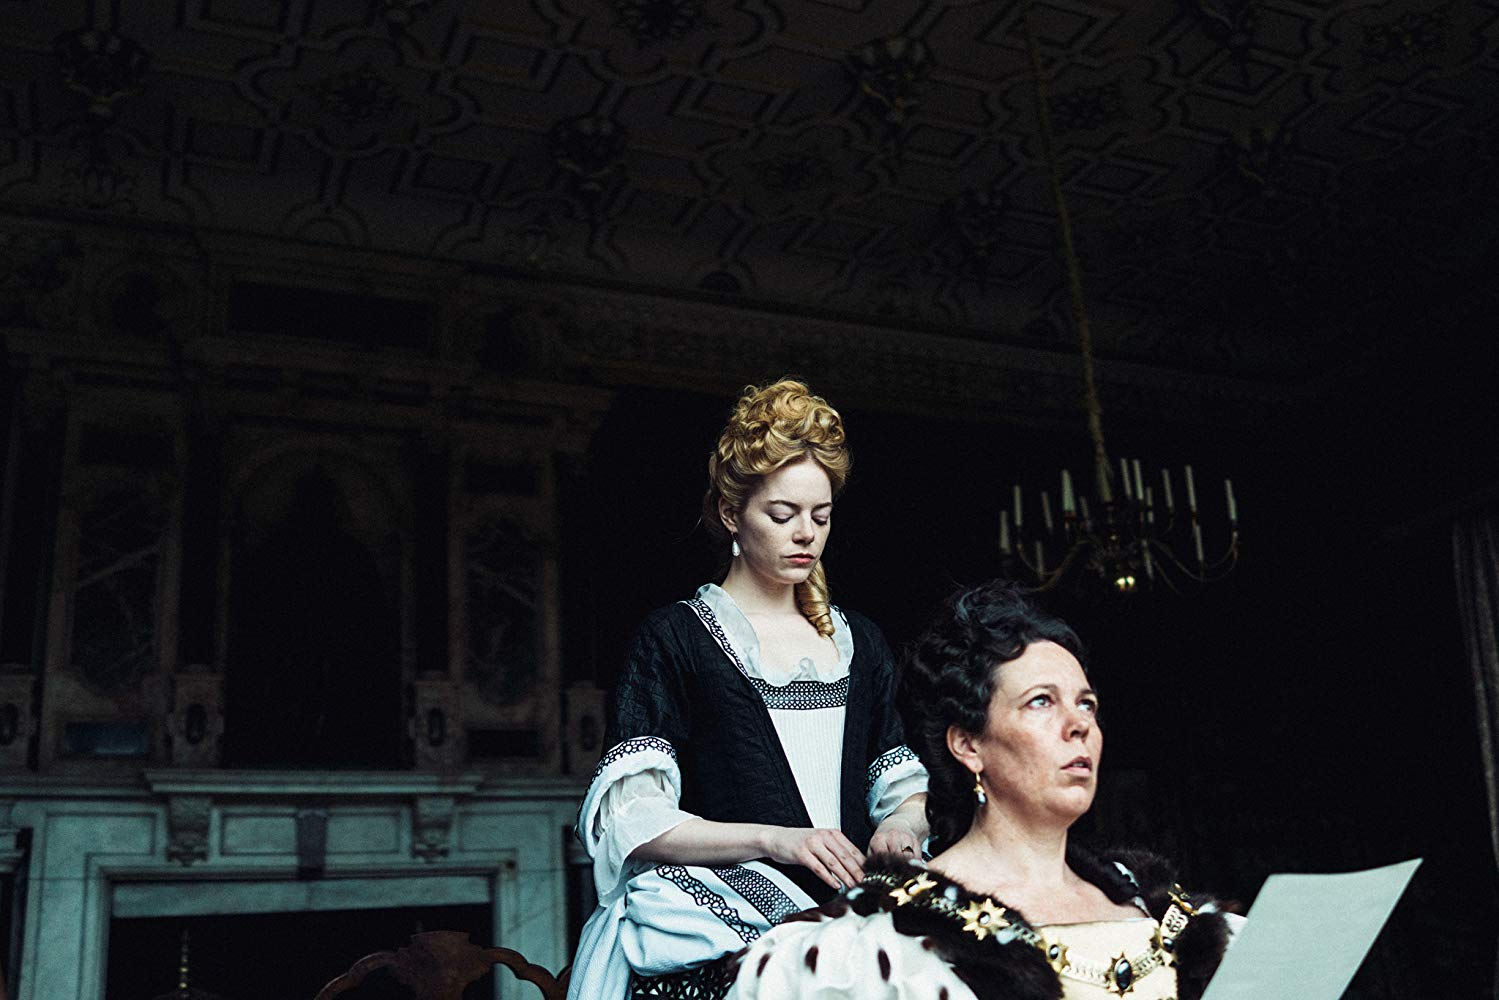 Crítica: A Favorita (The Favourite, EUA/Reino Unido, 2019)